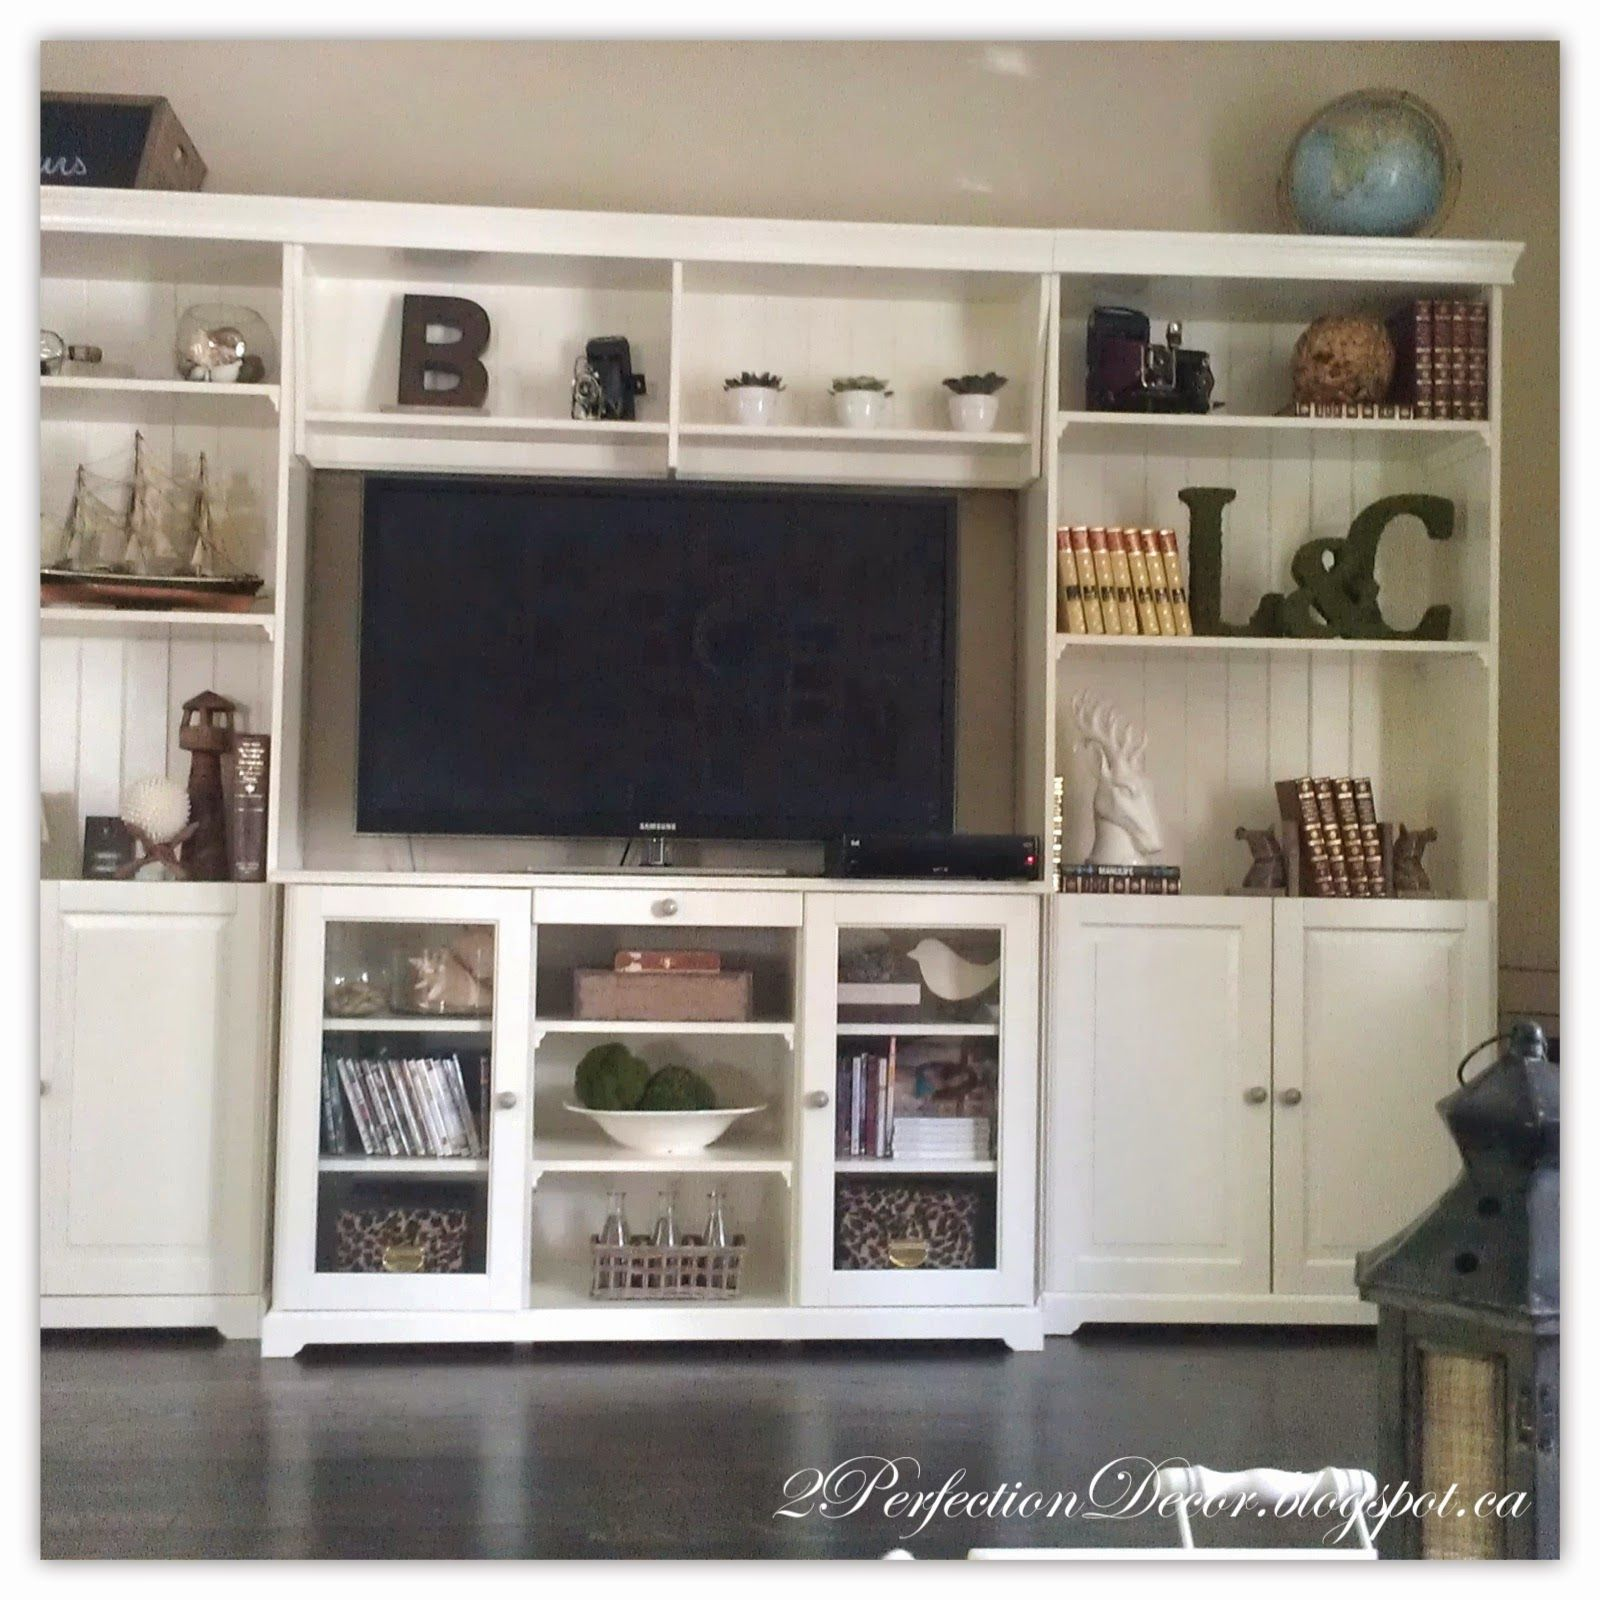 Our House 2 Final Reveal Home Tour Ikea Liatorp Bookcase White Bookshelves Media Unit Ideas Open Shelving Tv Stand French Country Living